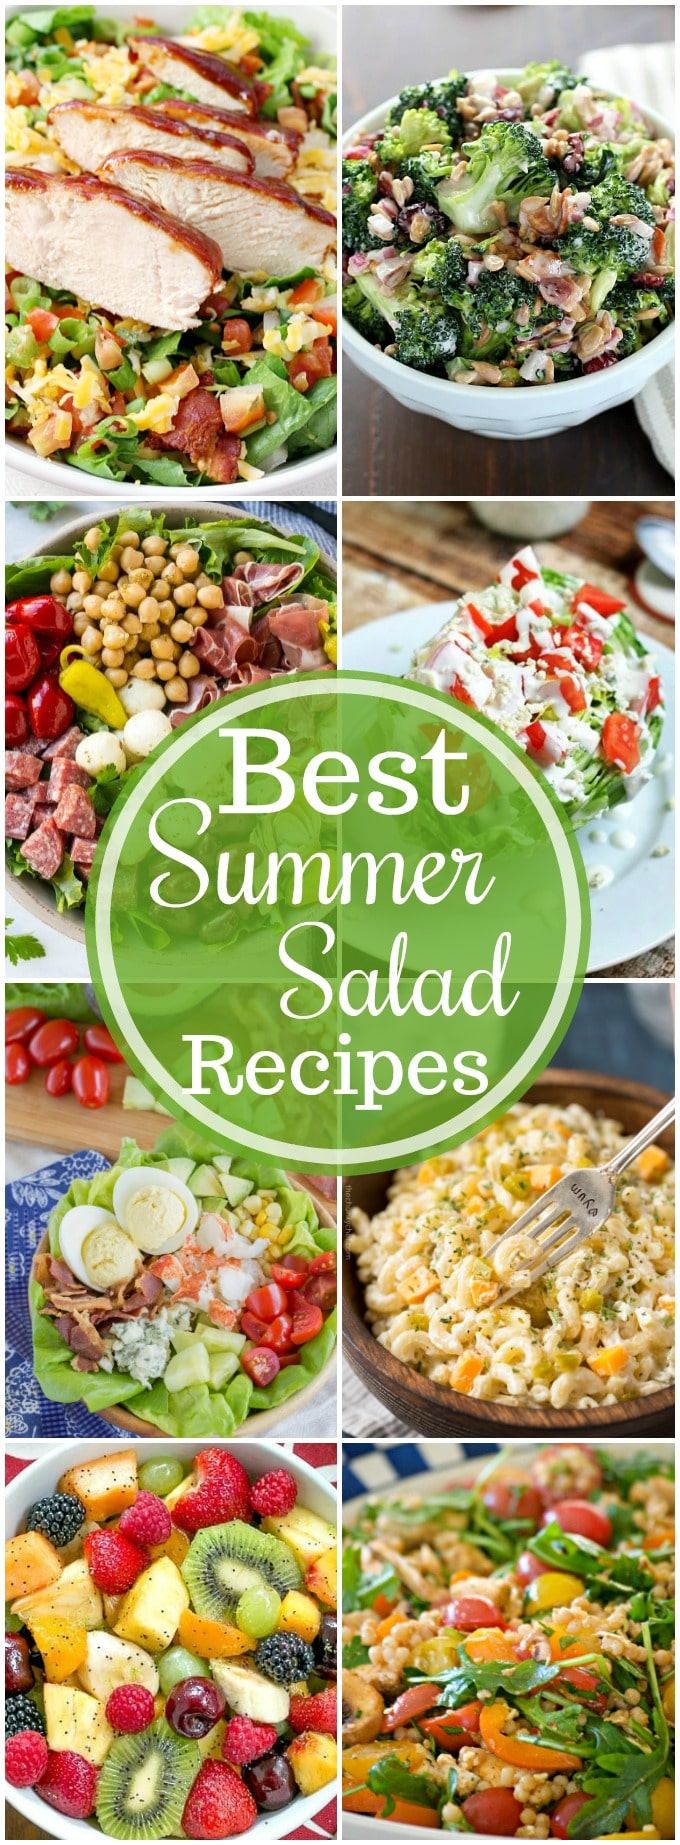 Best Summer Salad Recipes | A fantastic collection of the best summer salad recipes, perfect for a family dinner, summer BBQ or party! Get ready to get your salad on! | http://thechunkychef.com